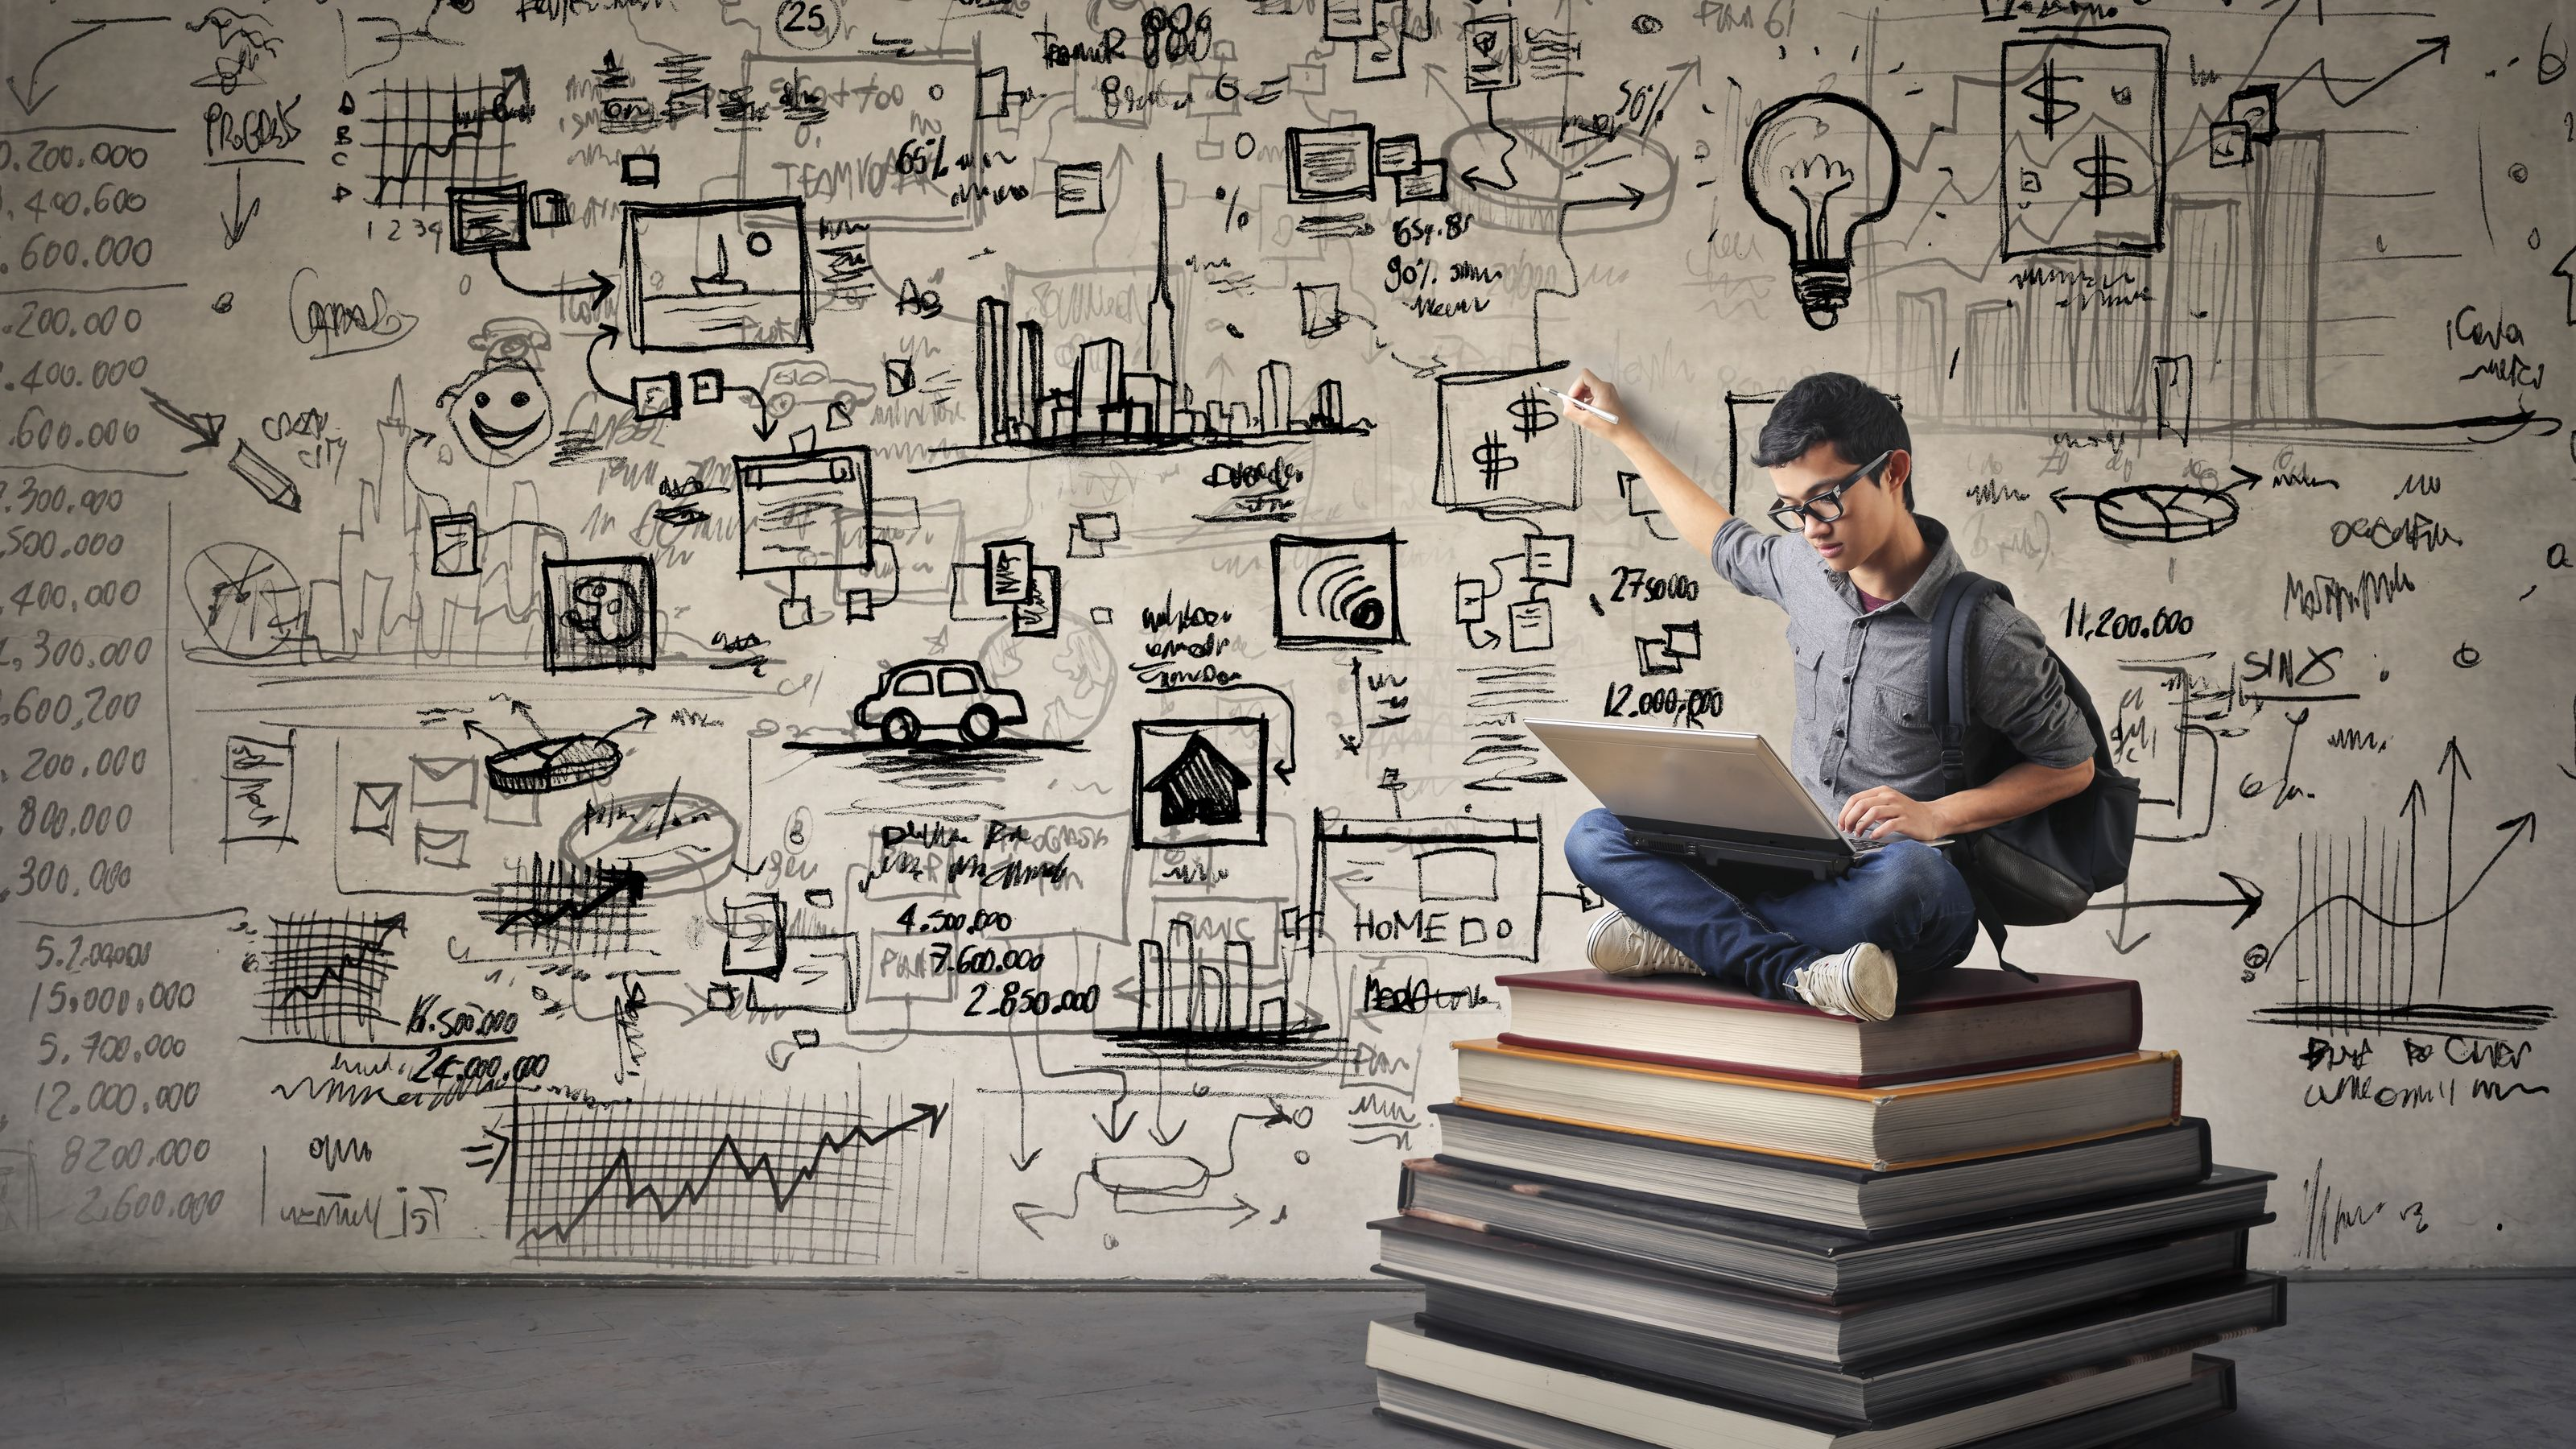 student sitting on top of a pile of academic books with ideas on a whiteboard behind him